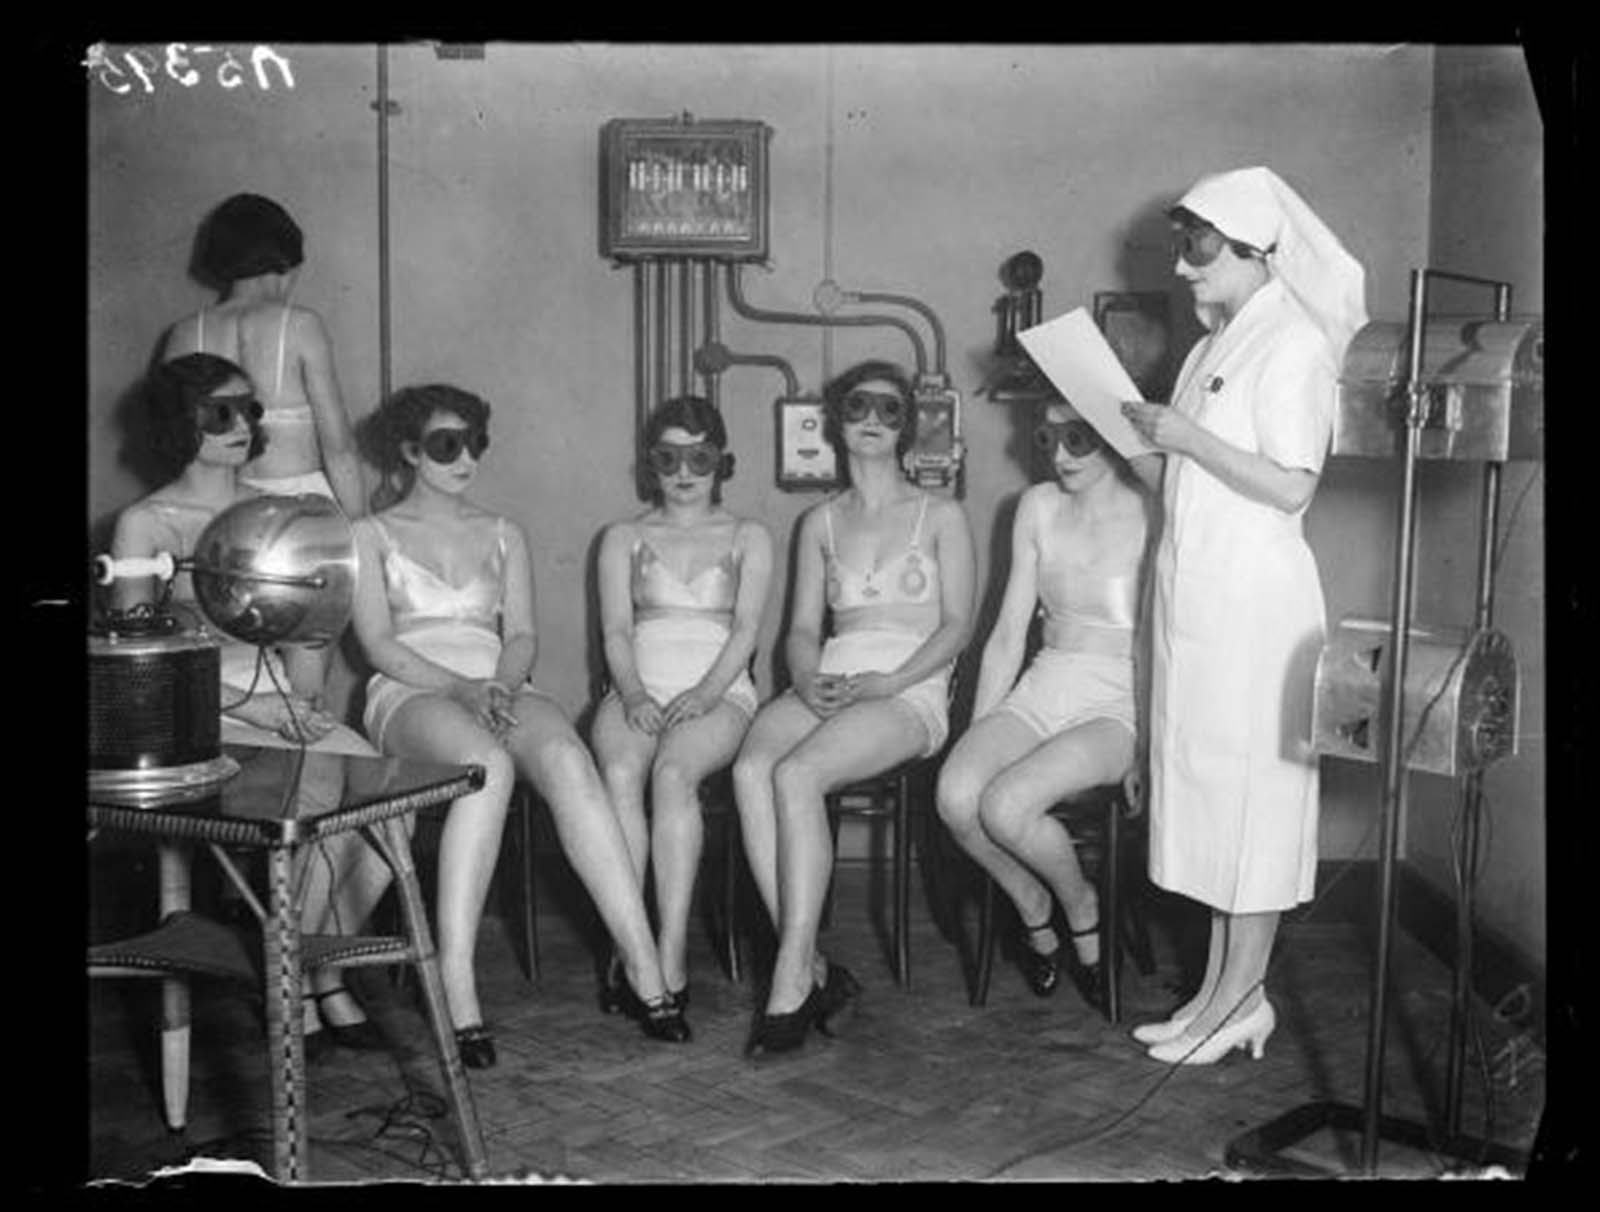 Sunray 'treatment', 20 February, 1932. These women, all Metropole Cinema attendants.